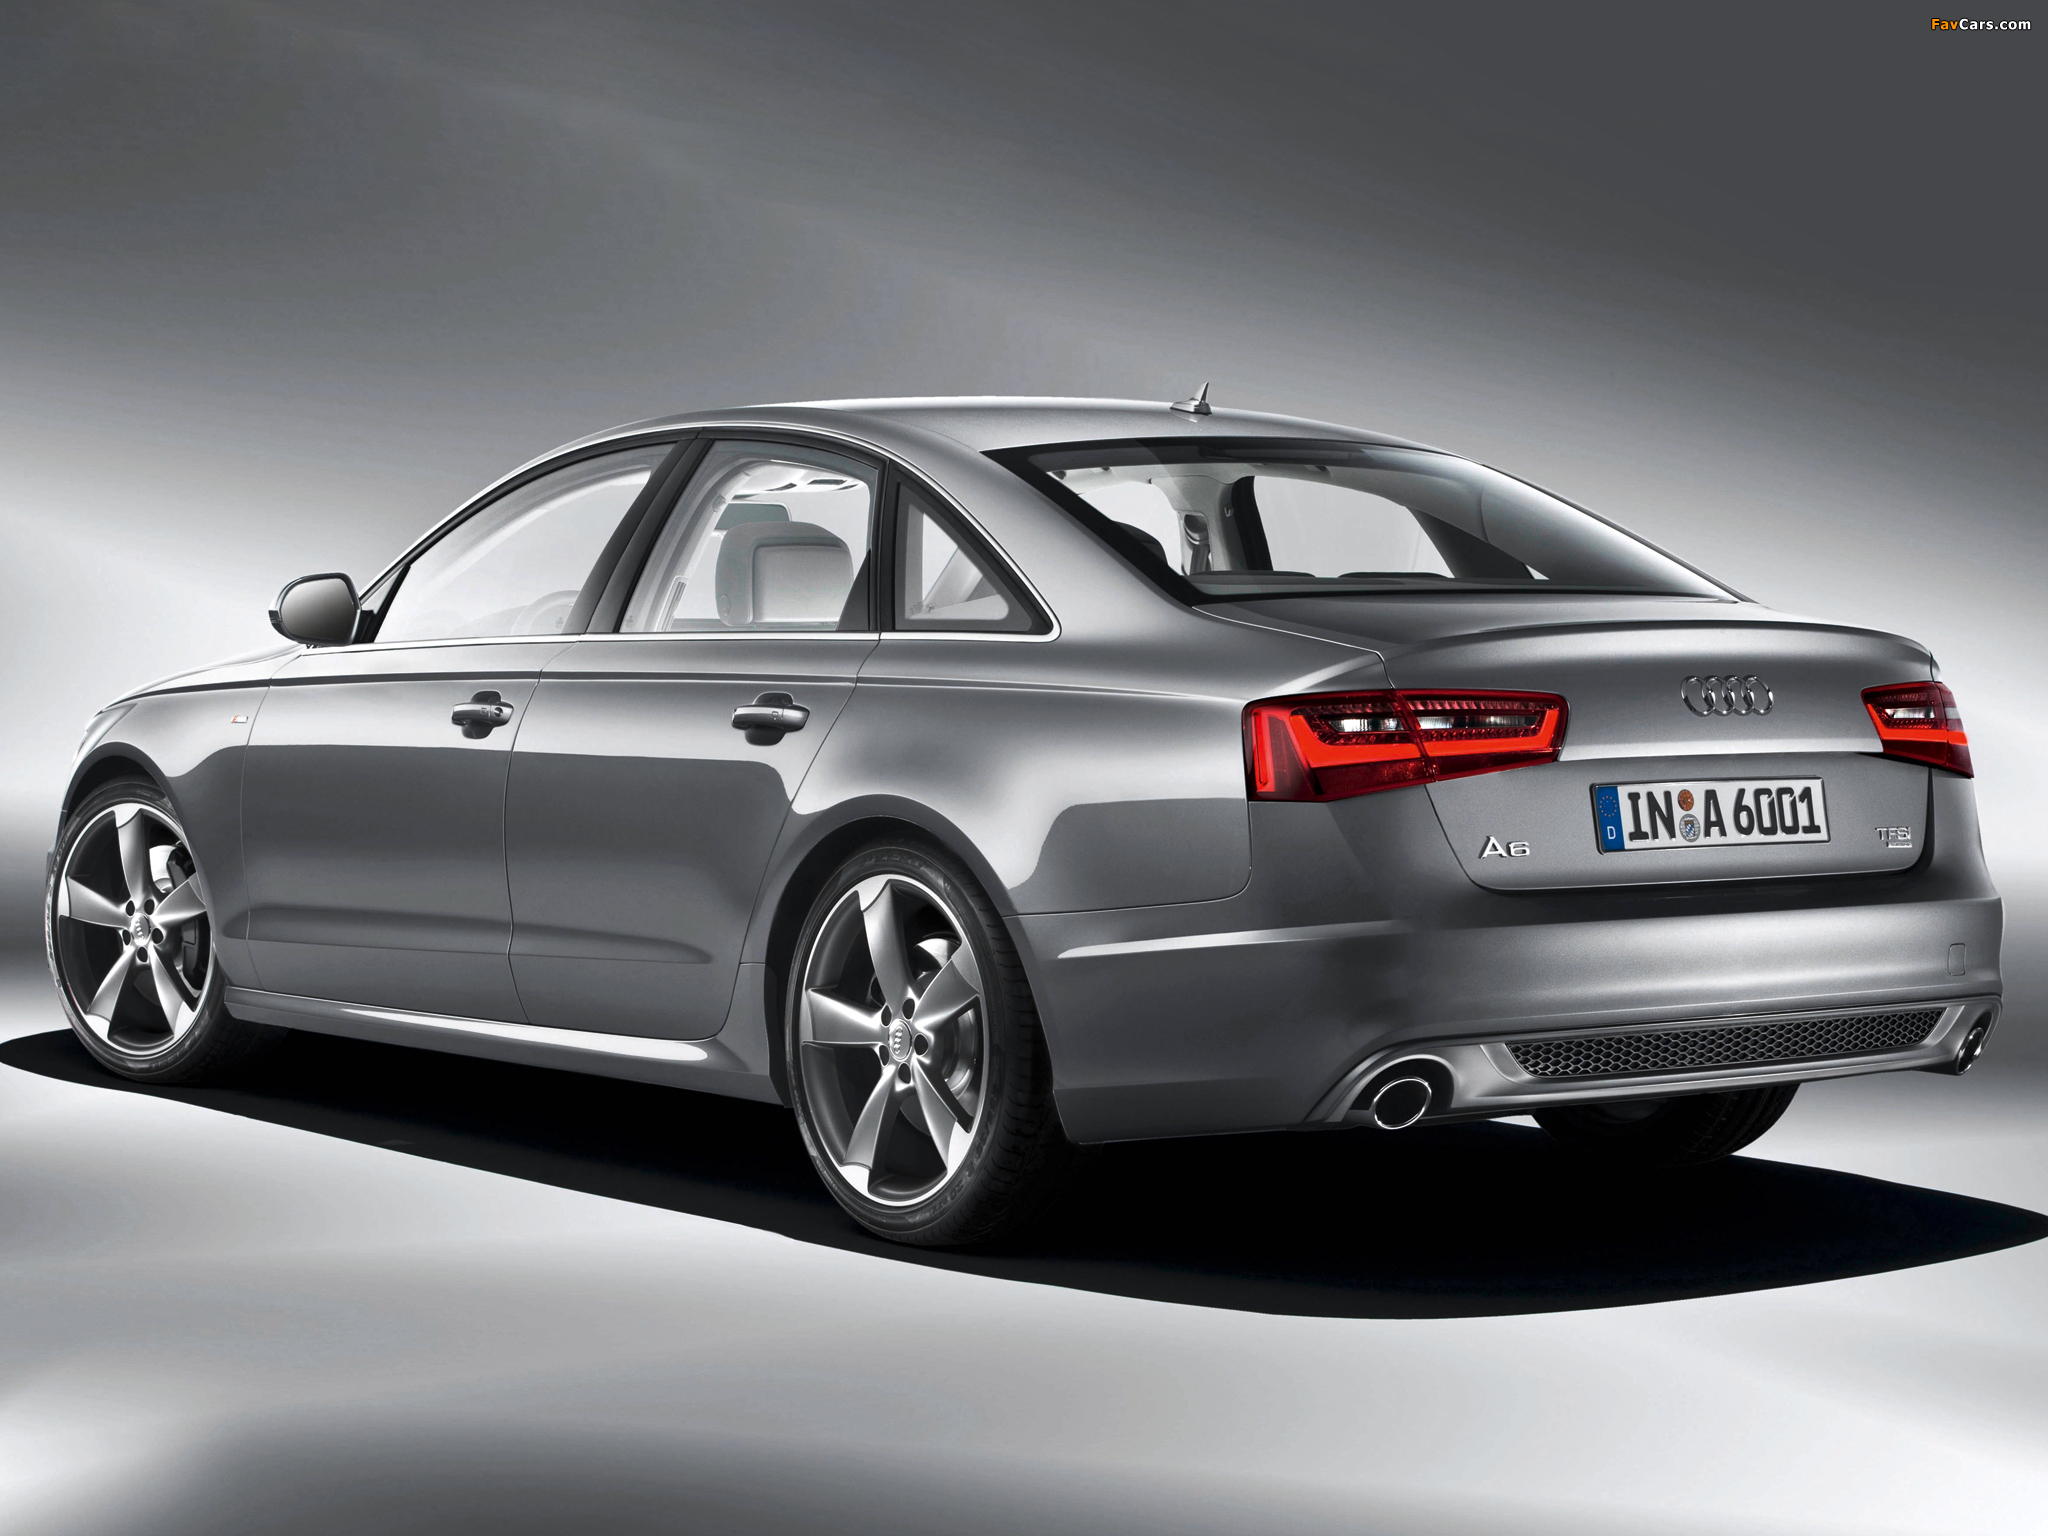 1024x768 Car Wallpapers Pictures Of Audi A6 3 0t S Line Sedan 4g C7 2011 2048x1536